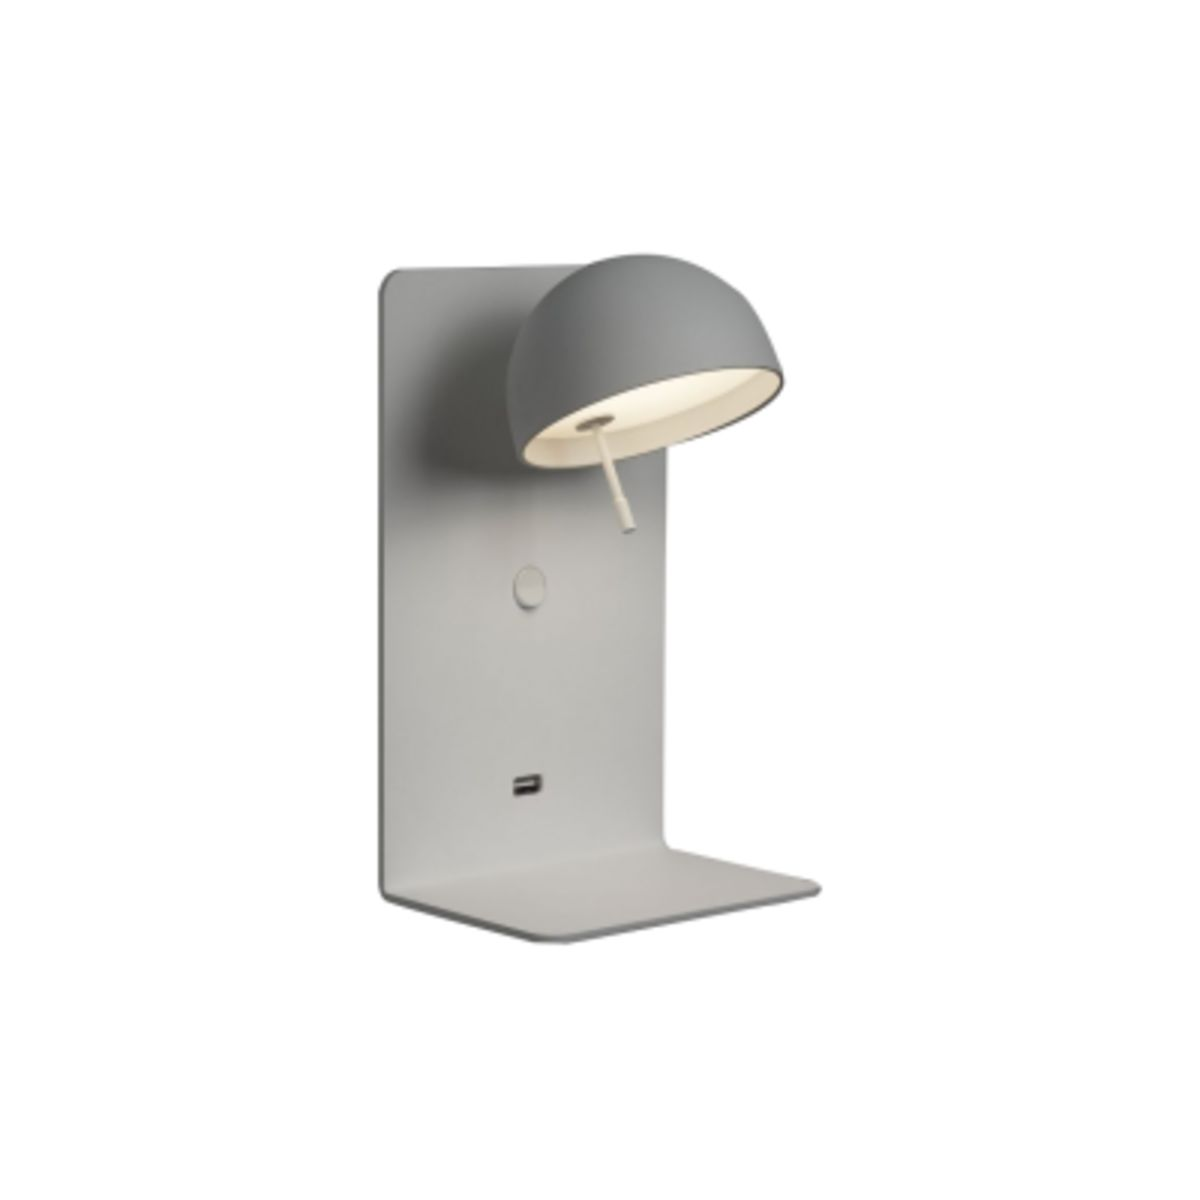 Beddy A/02 Wall Light White by BOVER | Clippings